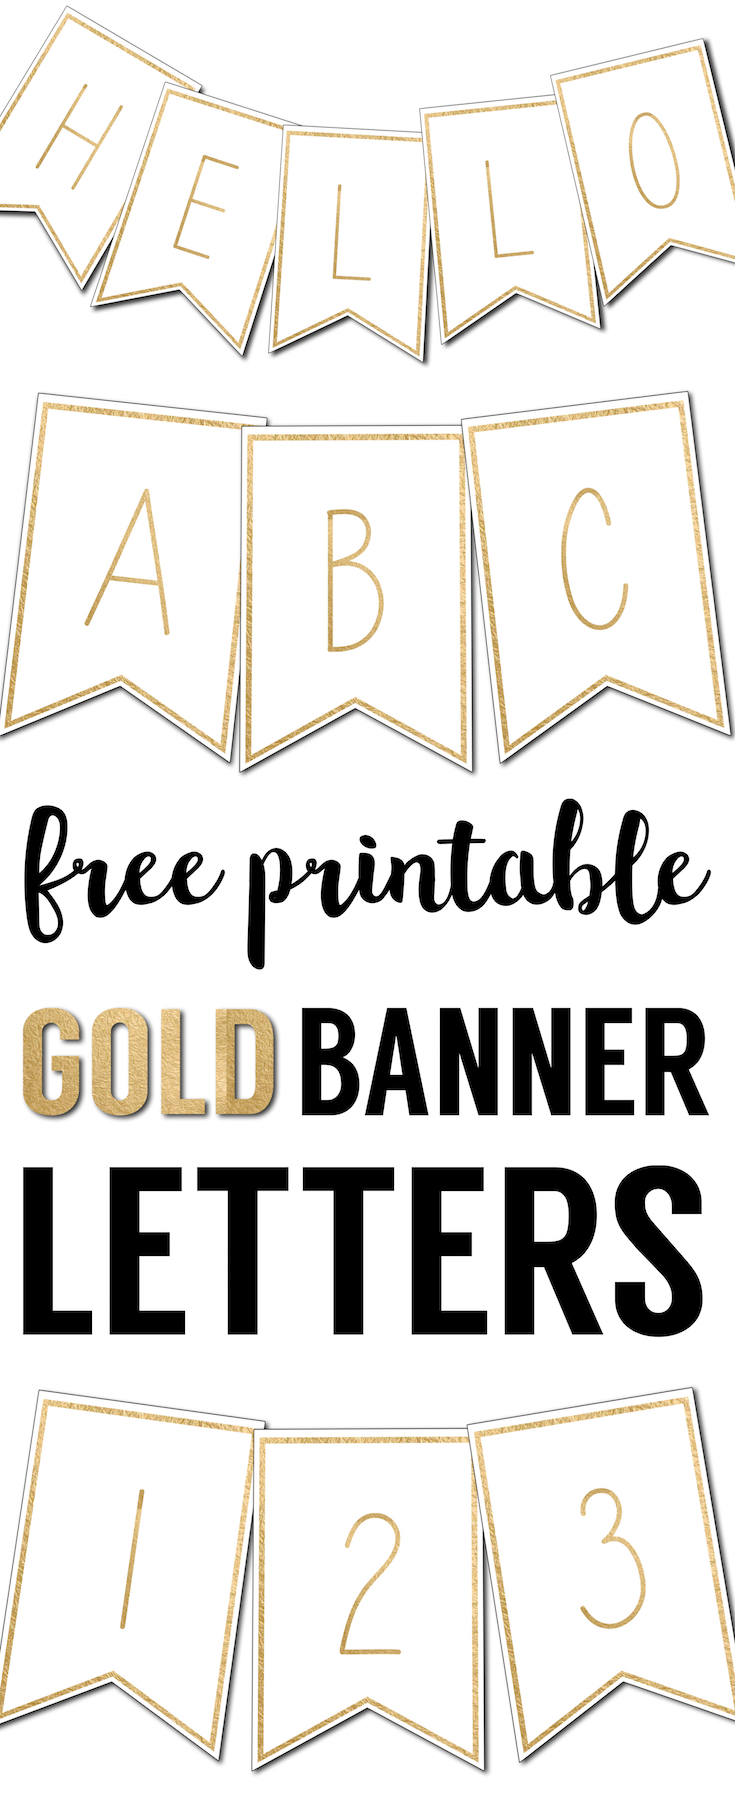 Juicy image inside printable banners